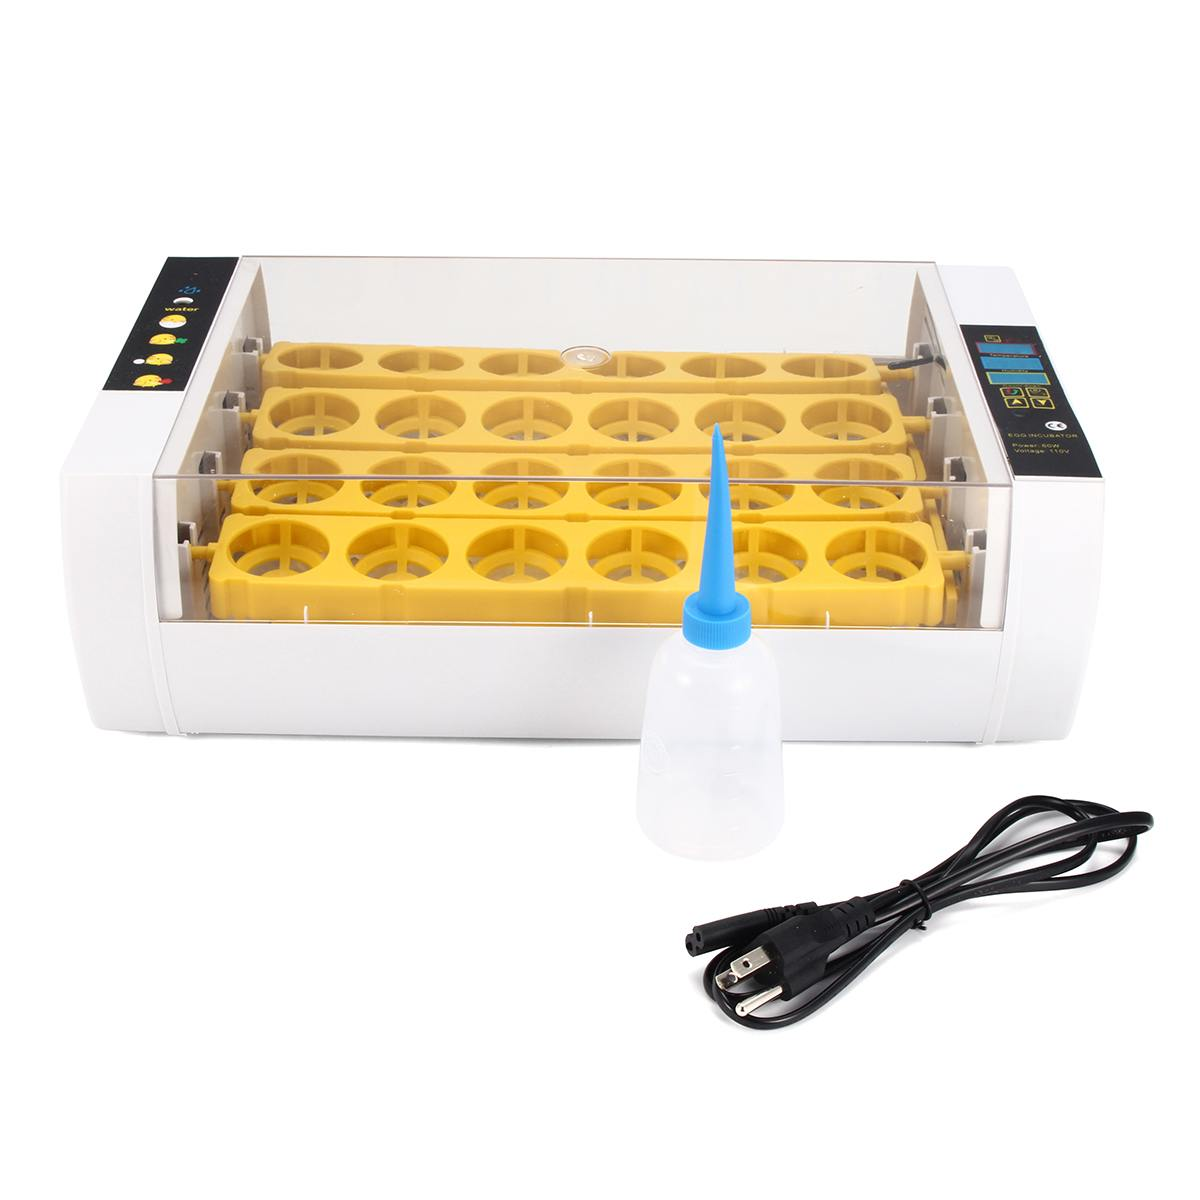 Fully Automatic Hatcher Machine 24 Hole Incubator Chicken Duck Digital Display Smart Sensitive Poultry Hatcher Tray Brooder 80W